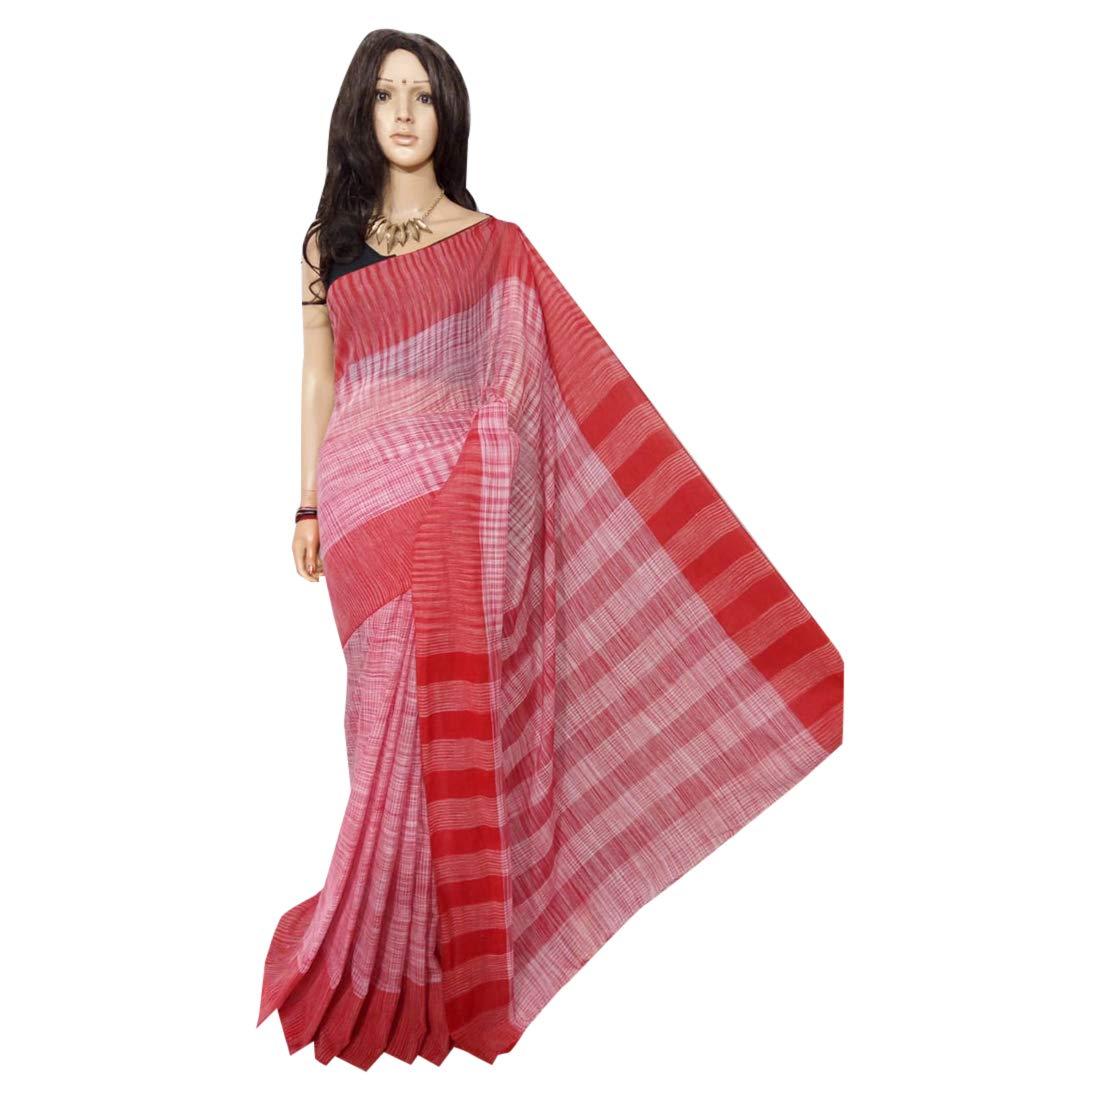 Cotton Saree Handloom Linen jamdani Saree weavers traditional Indian Bengal Women sari Ethnic Festive saree 125 2